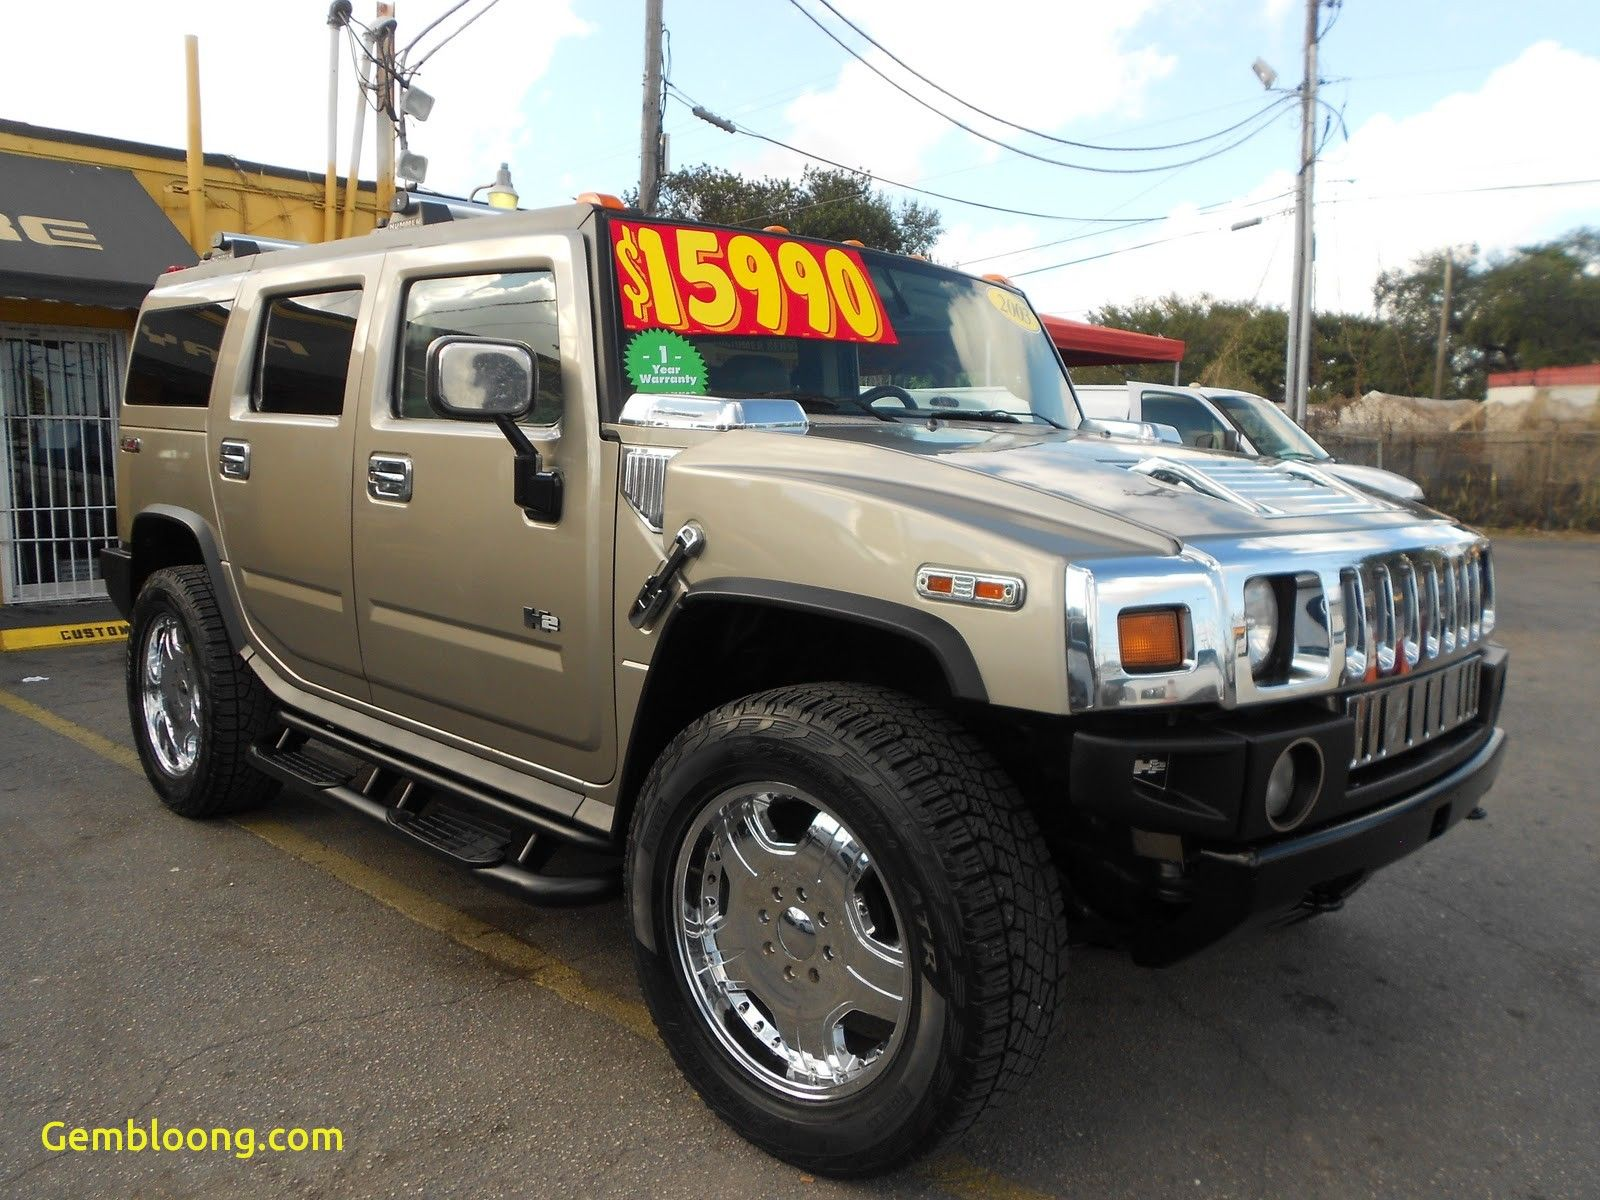 Used Cars Miami >> Where To Find Used Cars For Sale Unique Coral Group Miami Used Cars